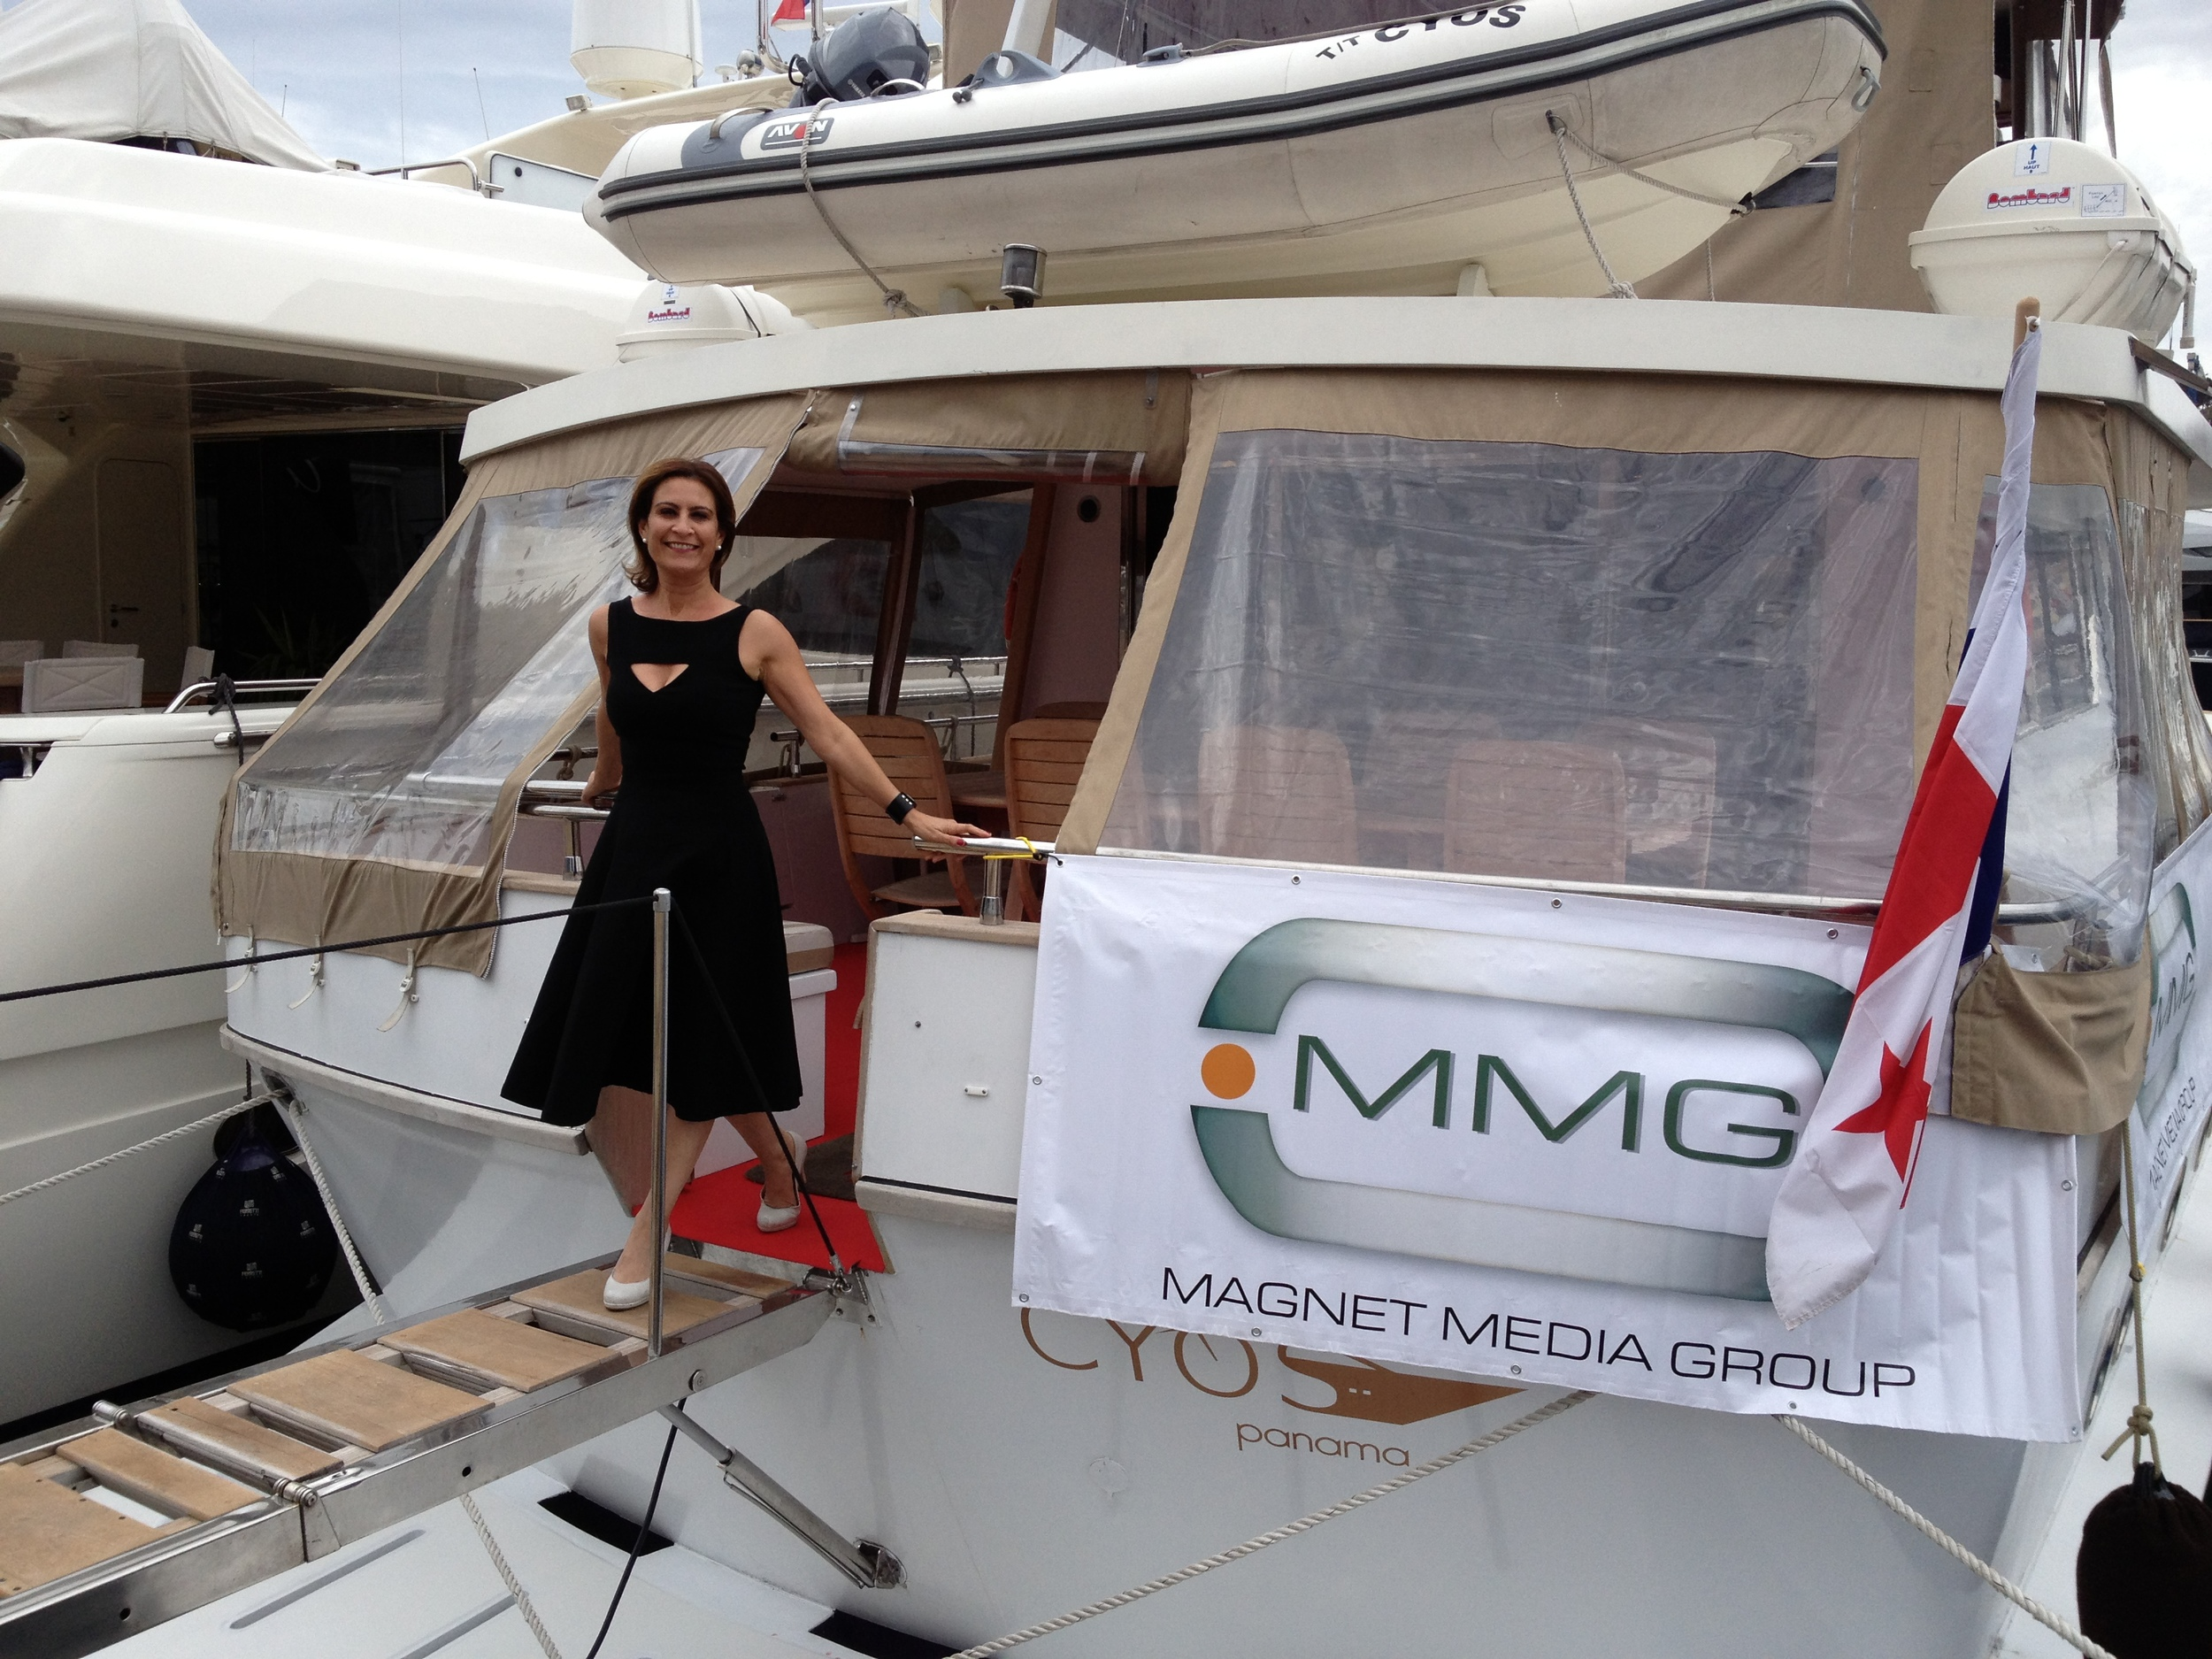 Michele Ohayon, CEO of Kavana Media, after moderating a panel on Film Financing and Distribution on the Magnet Media Group Yacht at the Cannes Film Festival 2013